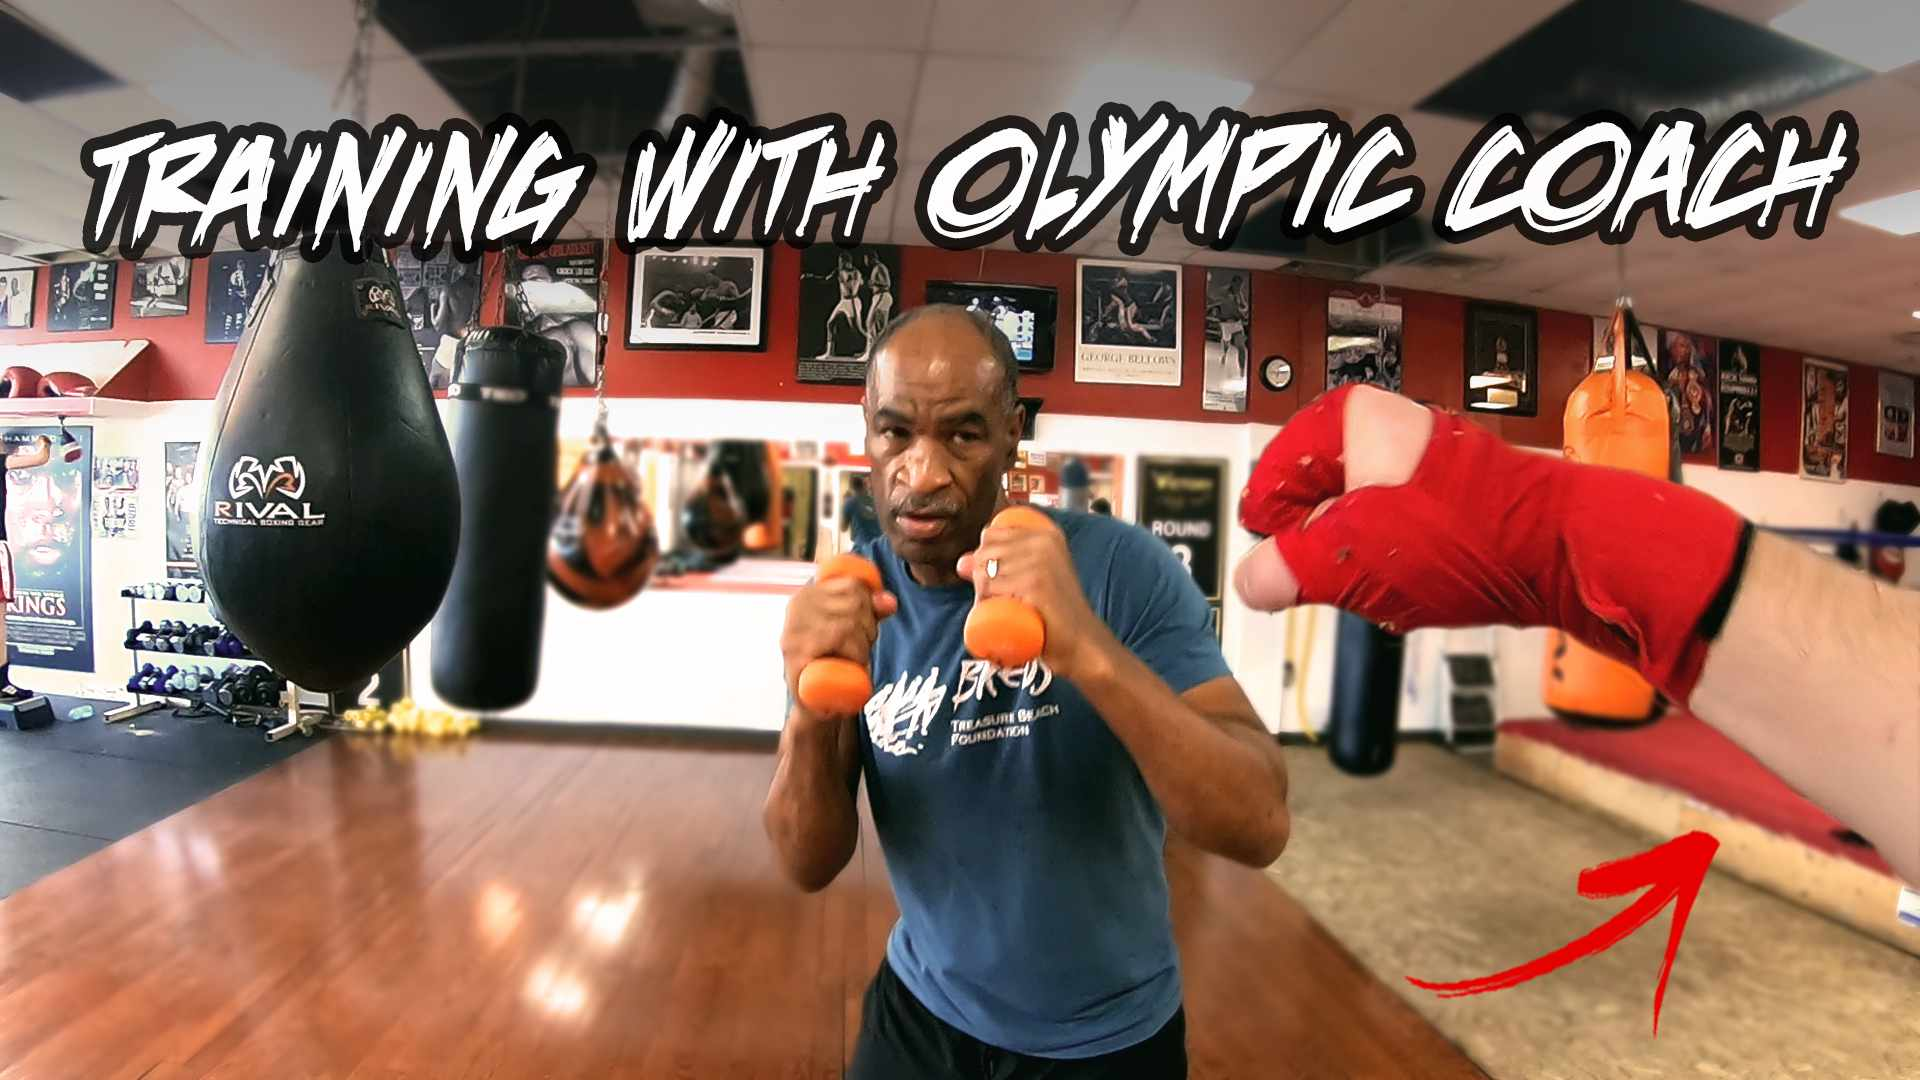 MY BOXING TRAINING WORKOUT... With an Olympic Boxer & Olympics Coach (Dewith Boxing & Fits the Whip)